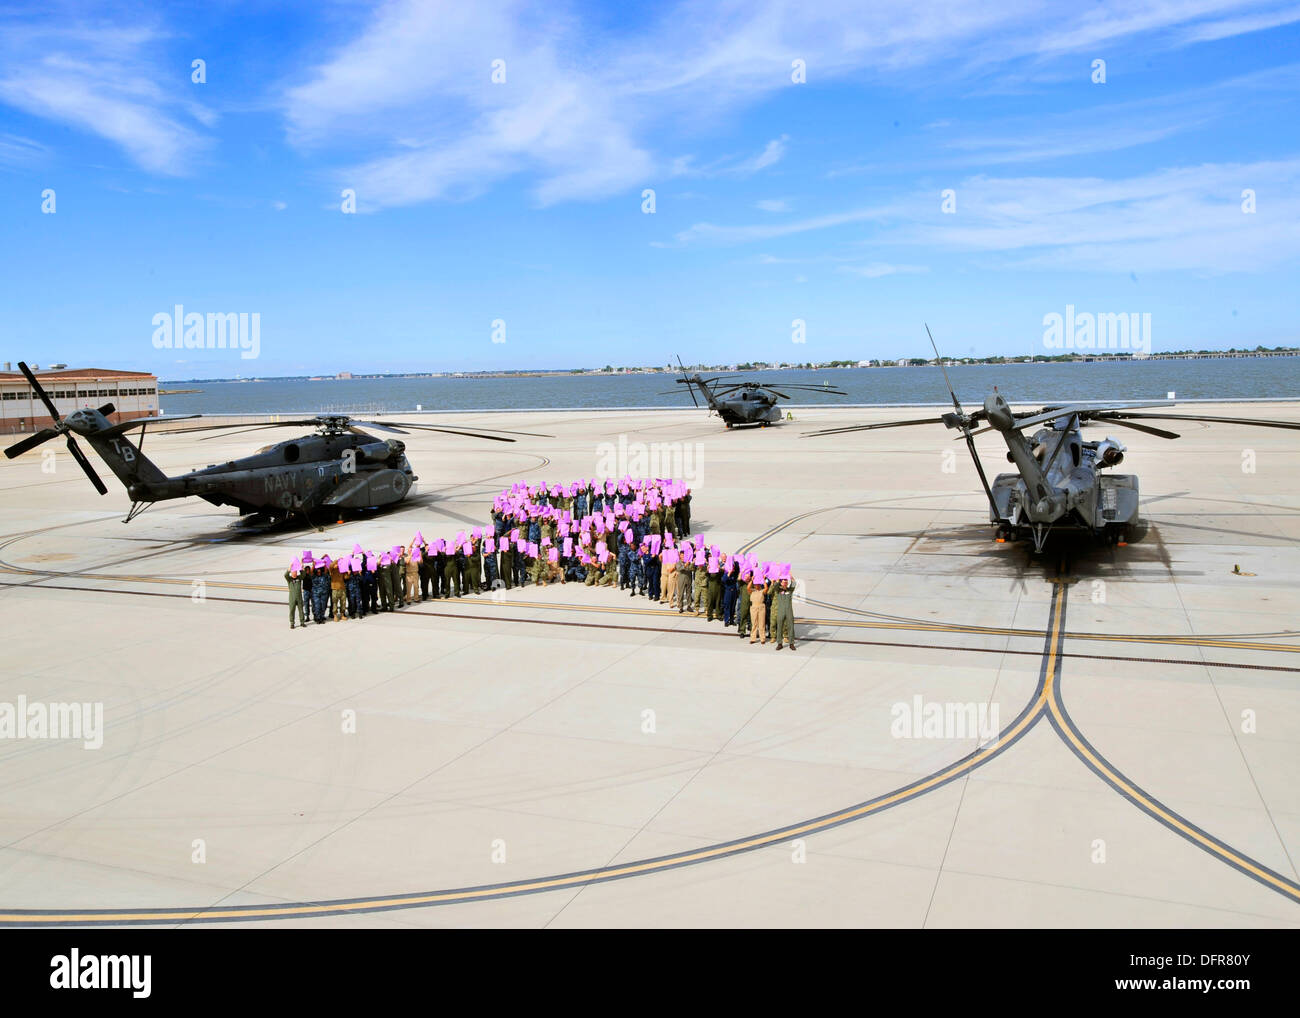 Sailors and civilians attached to Helicopter Mine Countermeasures Squadron (HM) 15 'Blackhawks,' form a human ribbon in support - Stock Image